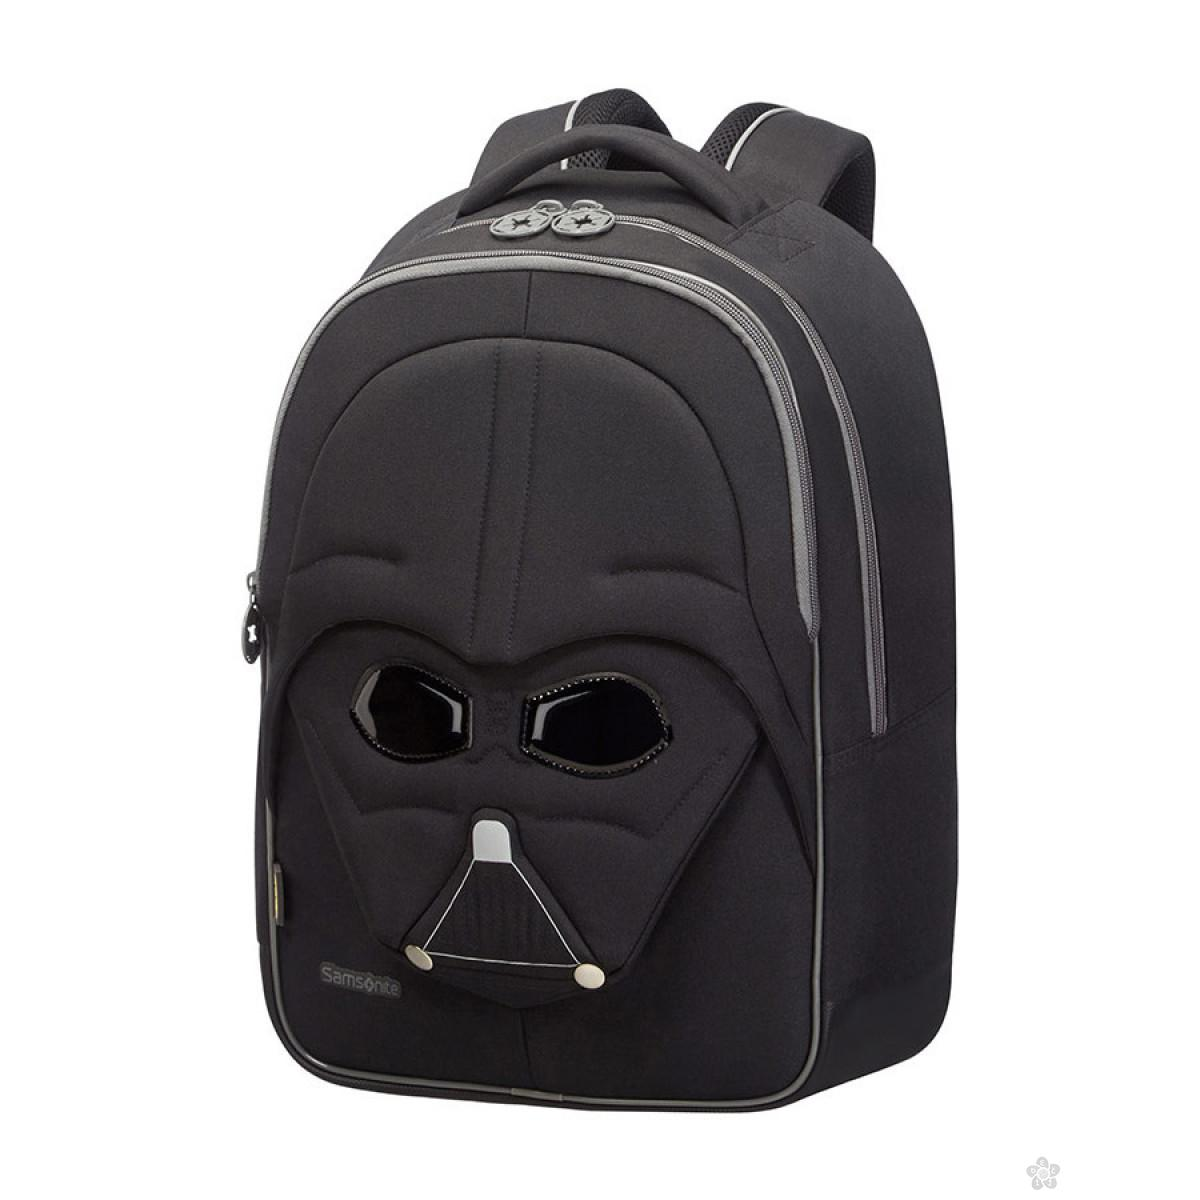 Samsonite ranac za školu Star Wars Iconic 25C*09002